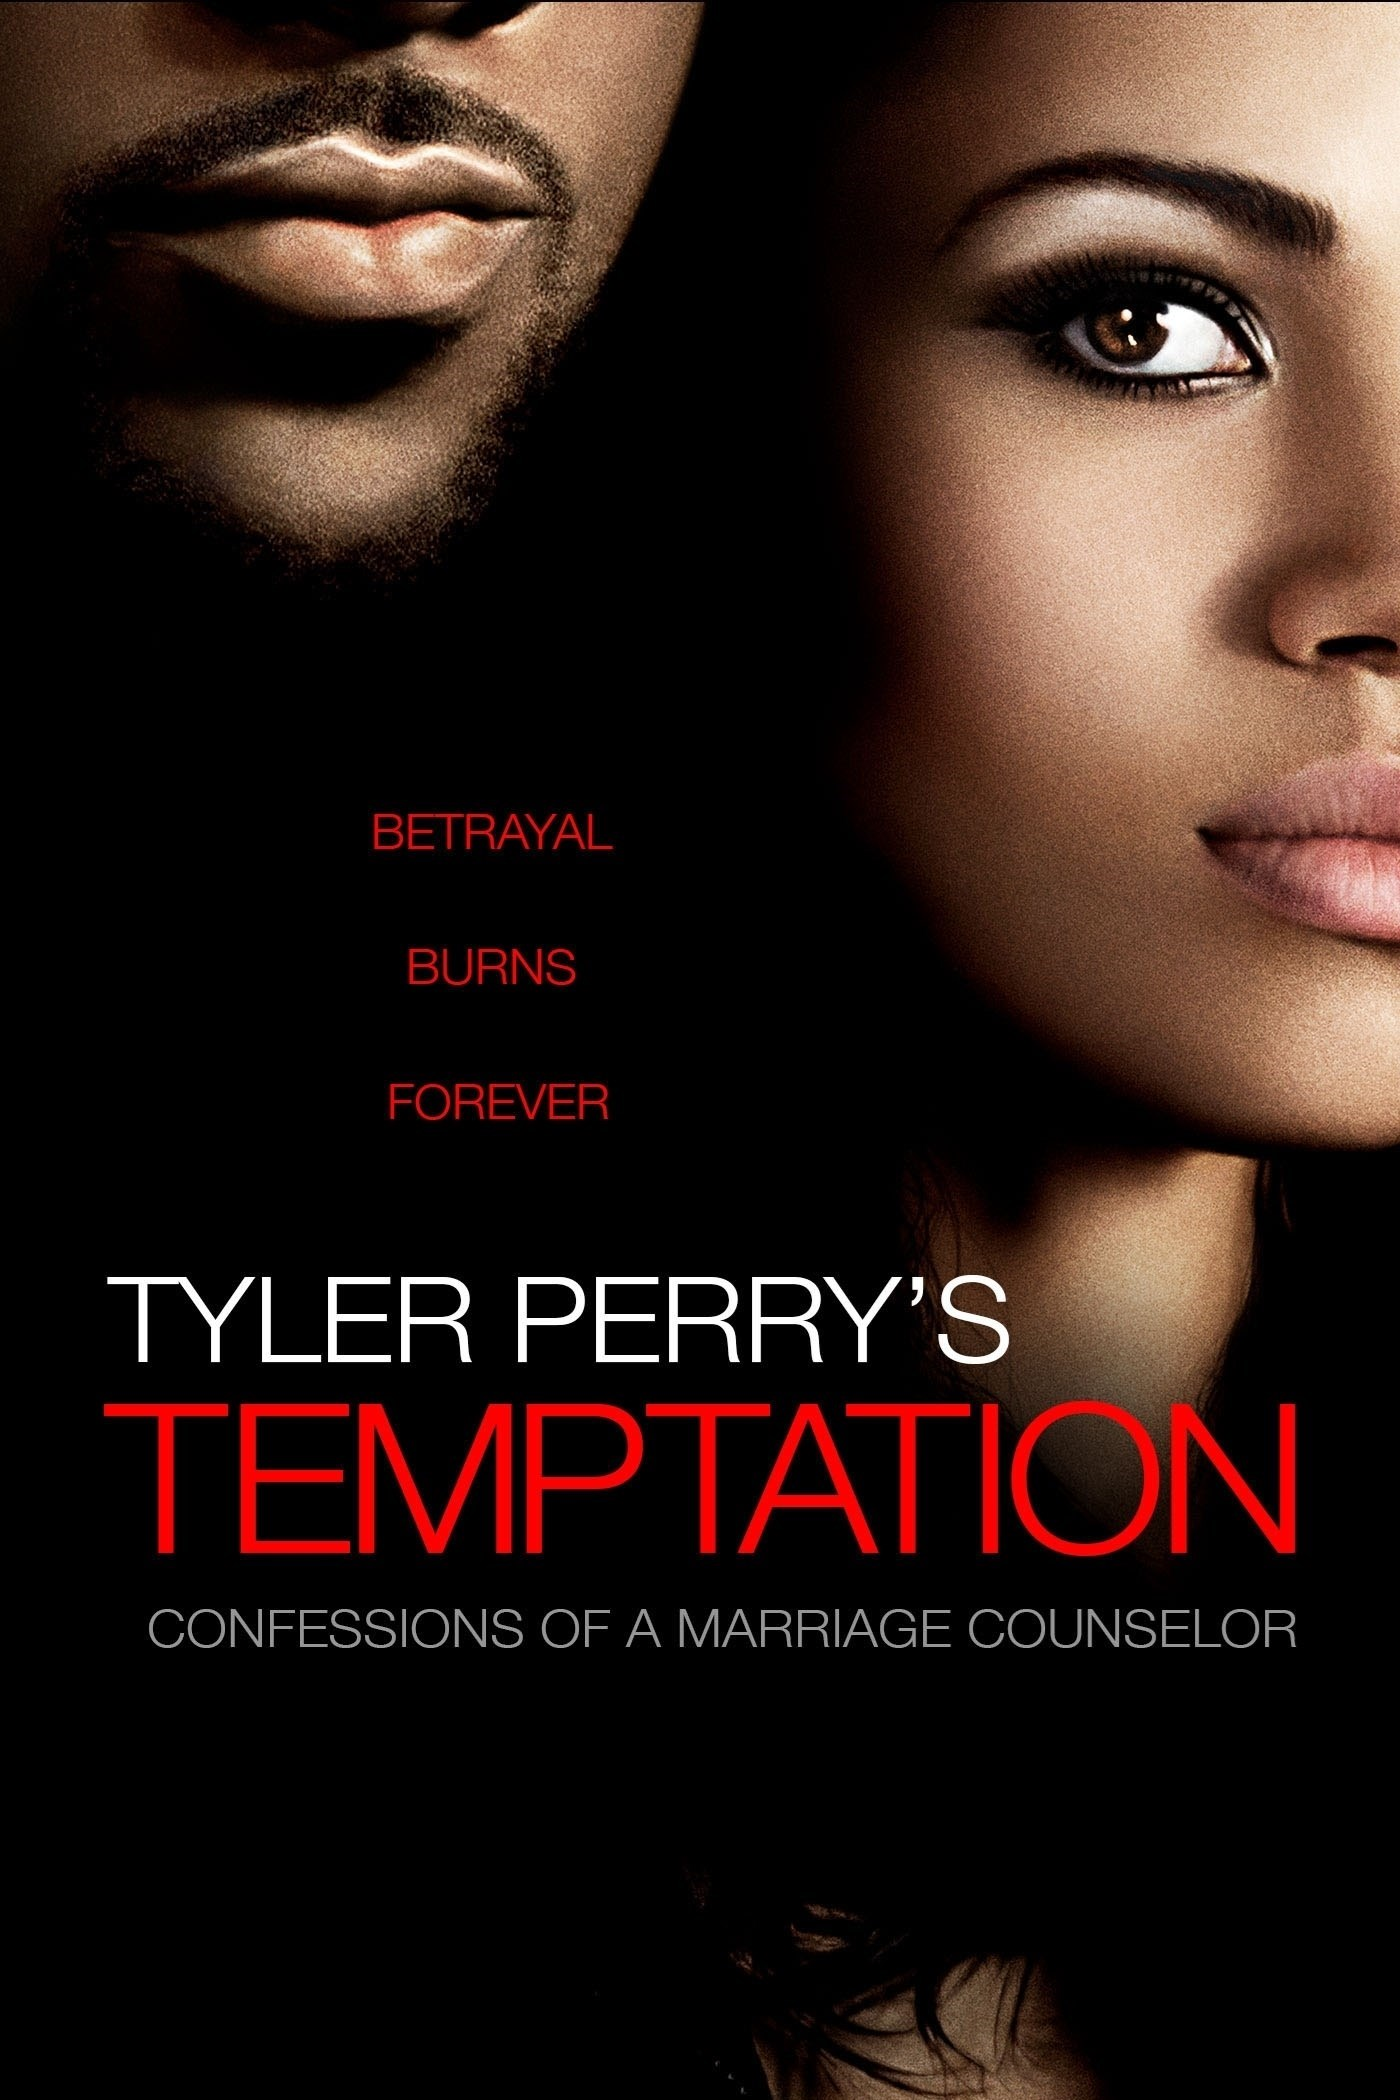 temptation-confessions-of-a-marriage-counselor_27389